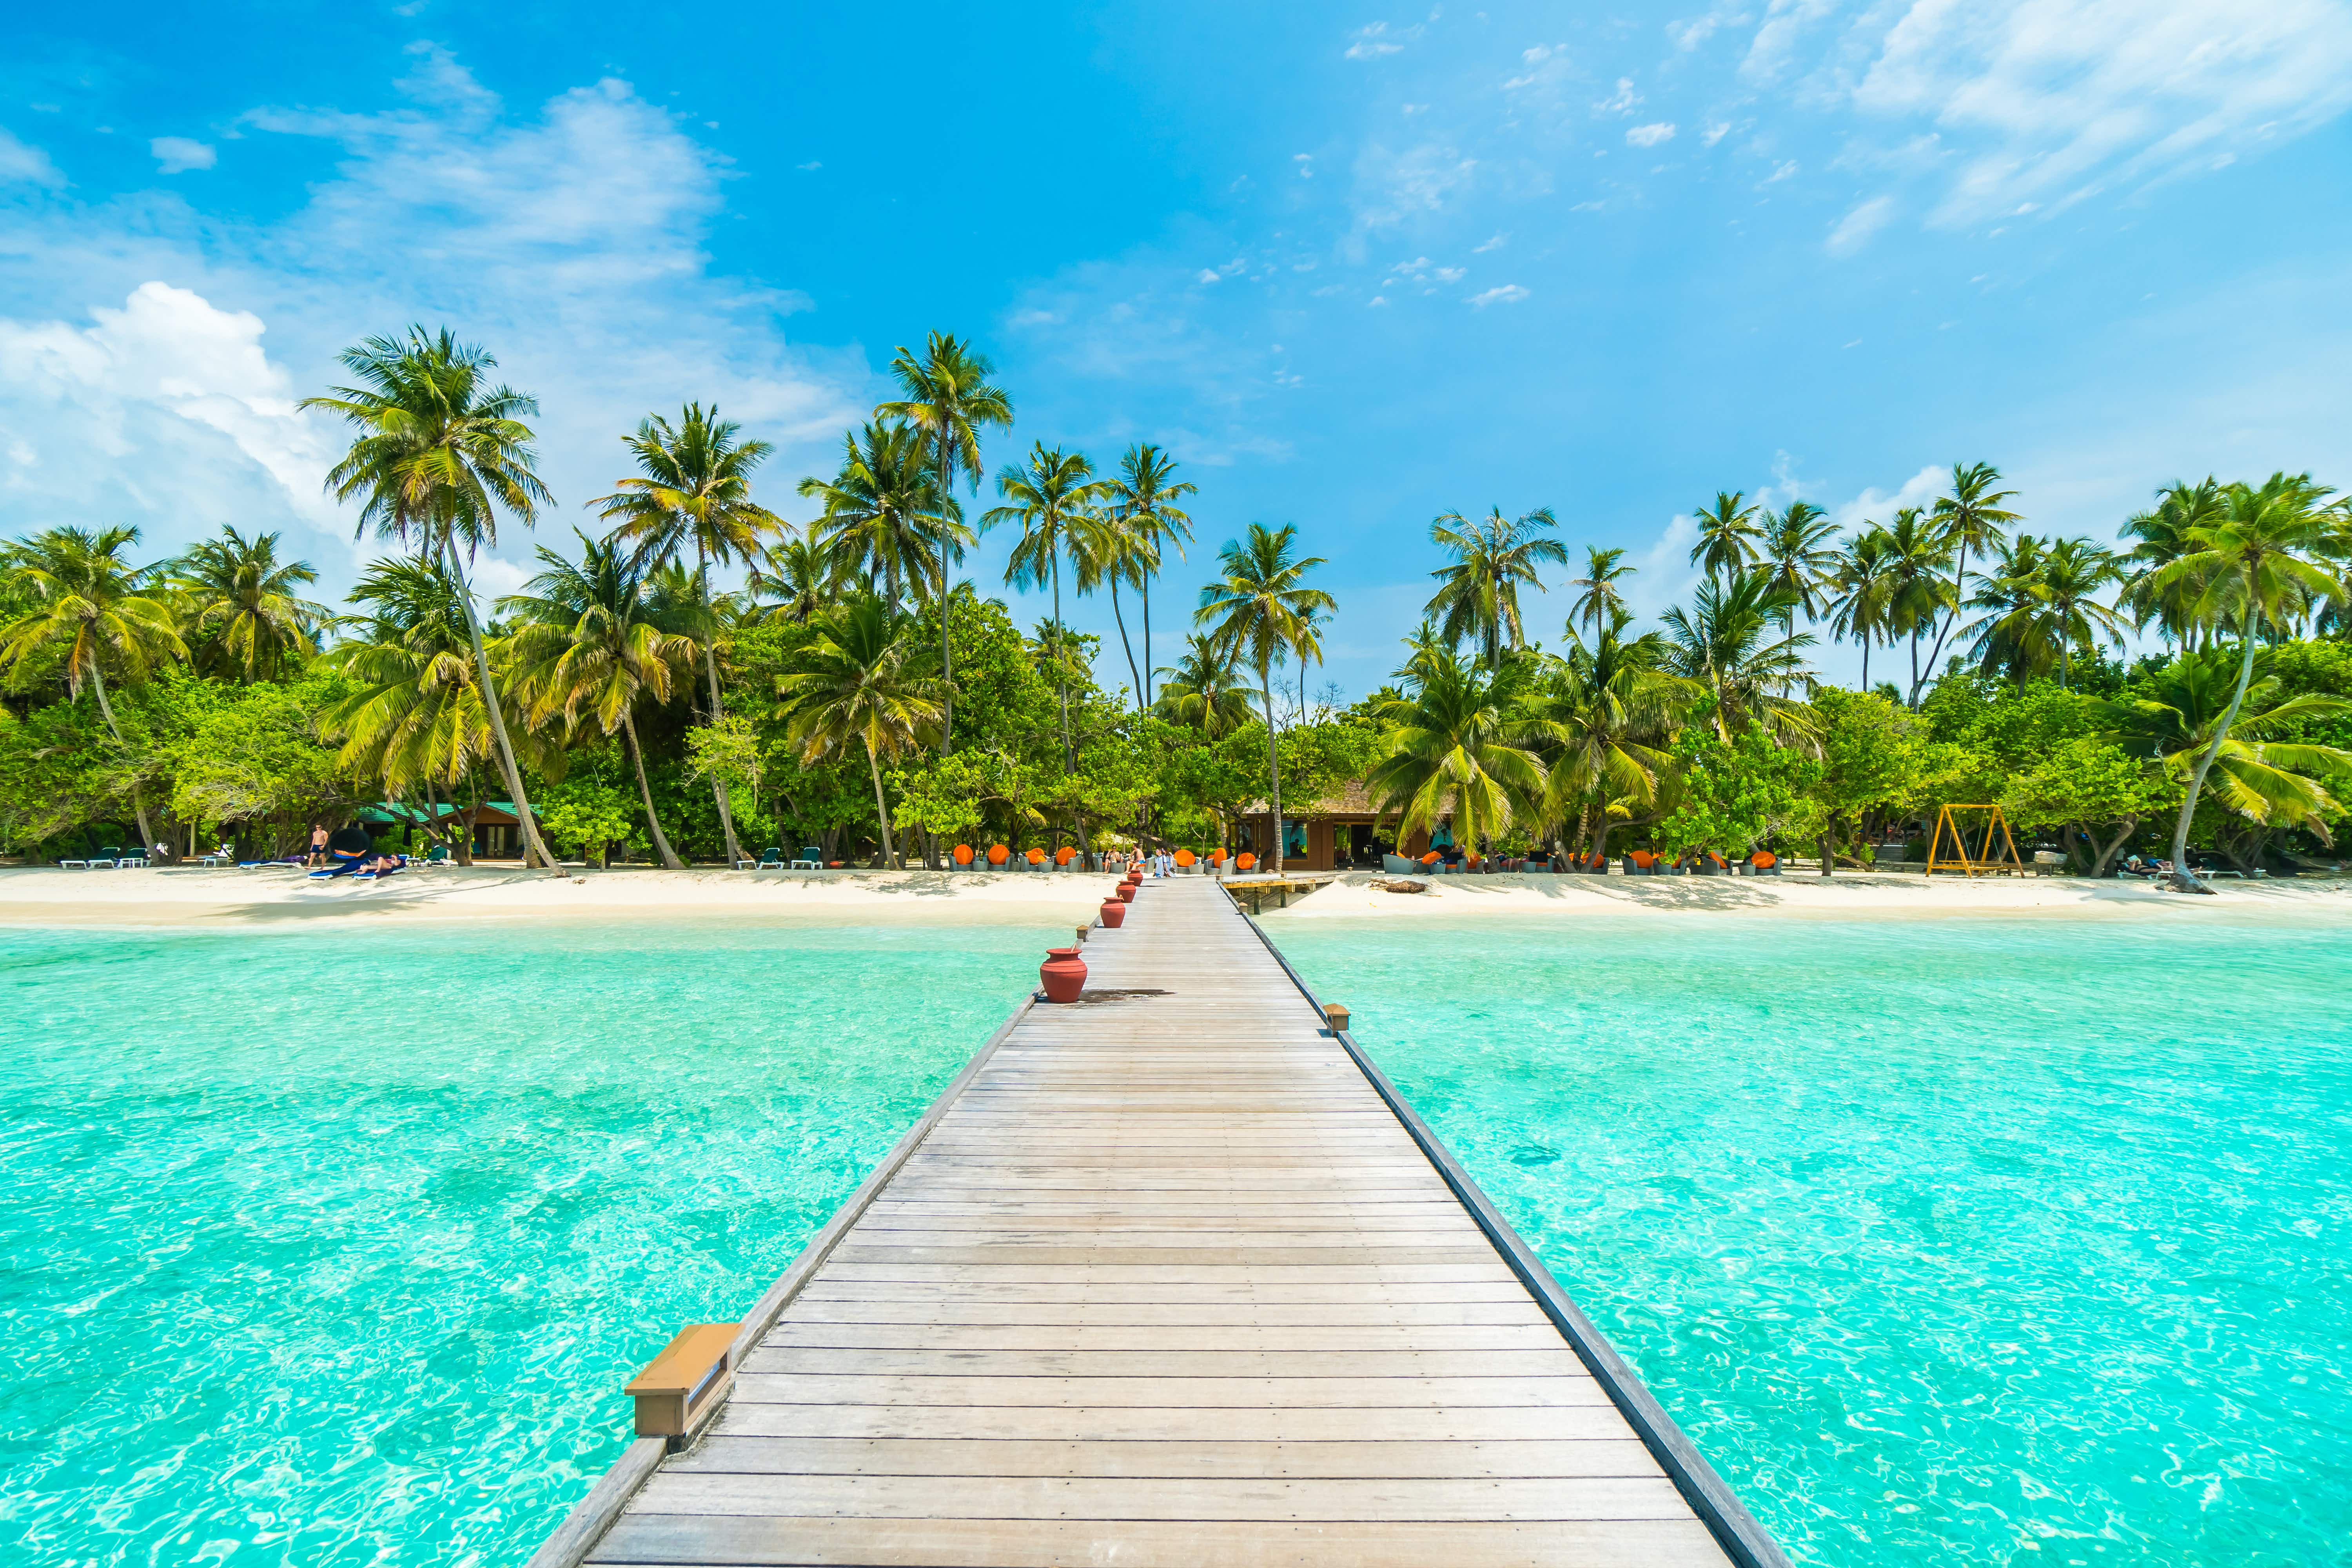 Although remote, the Maldives have proven popular in Google searches in 2019 © Food Travel Stockforlife / Shutterstock